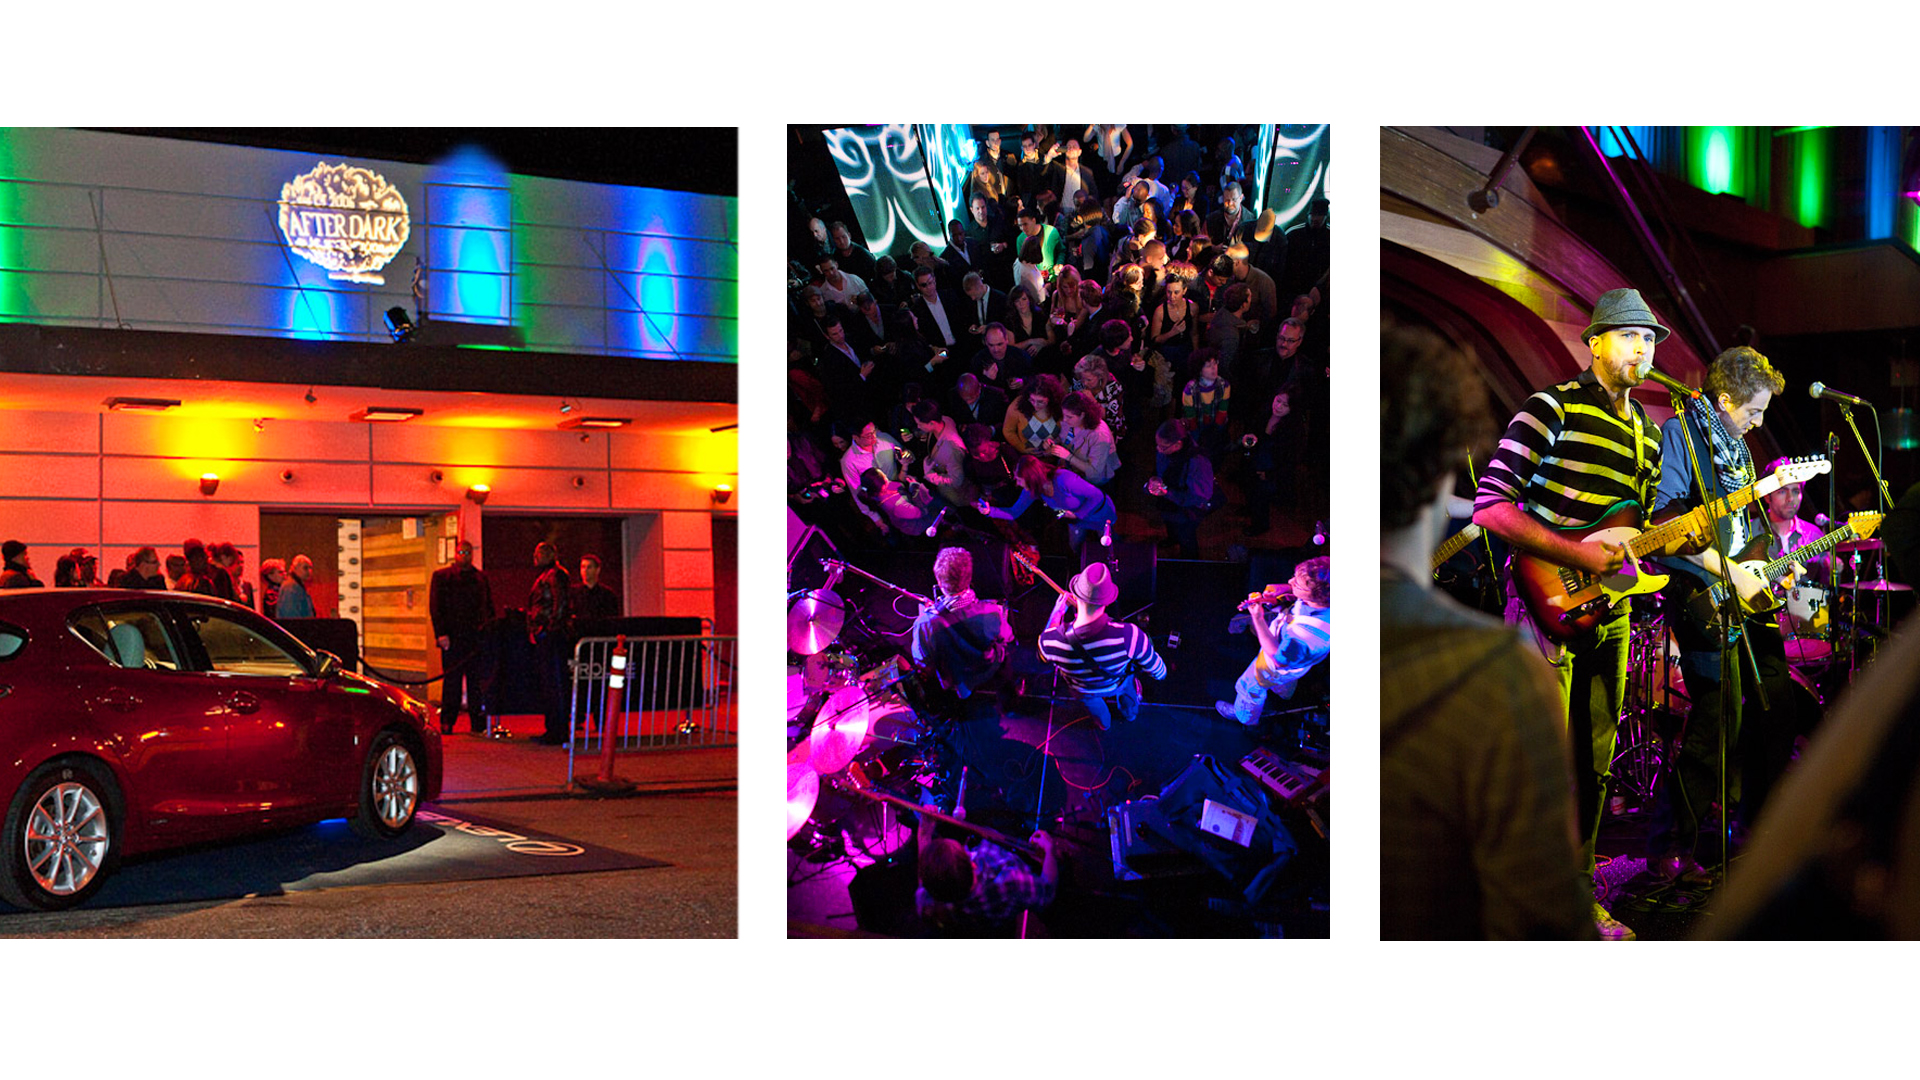 Lexus CT200h Nighttime events in 6 different cities across the U.S.